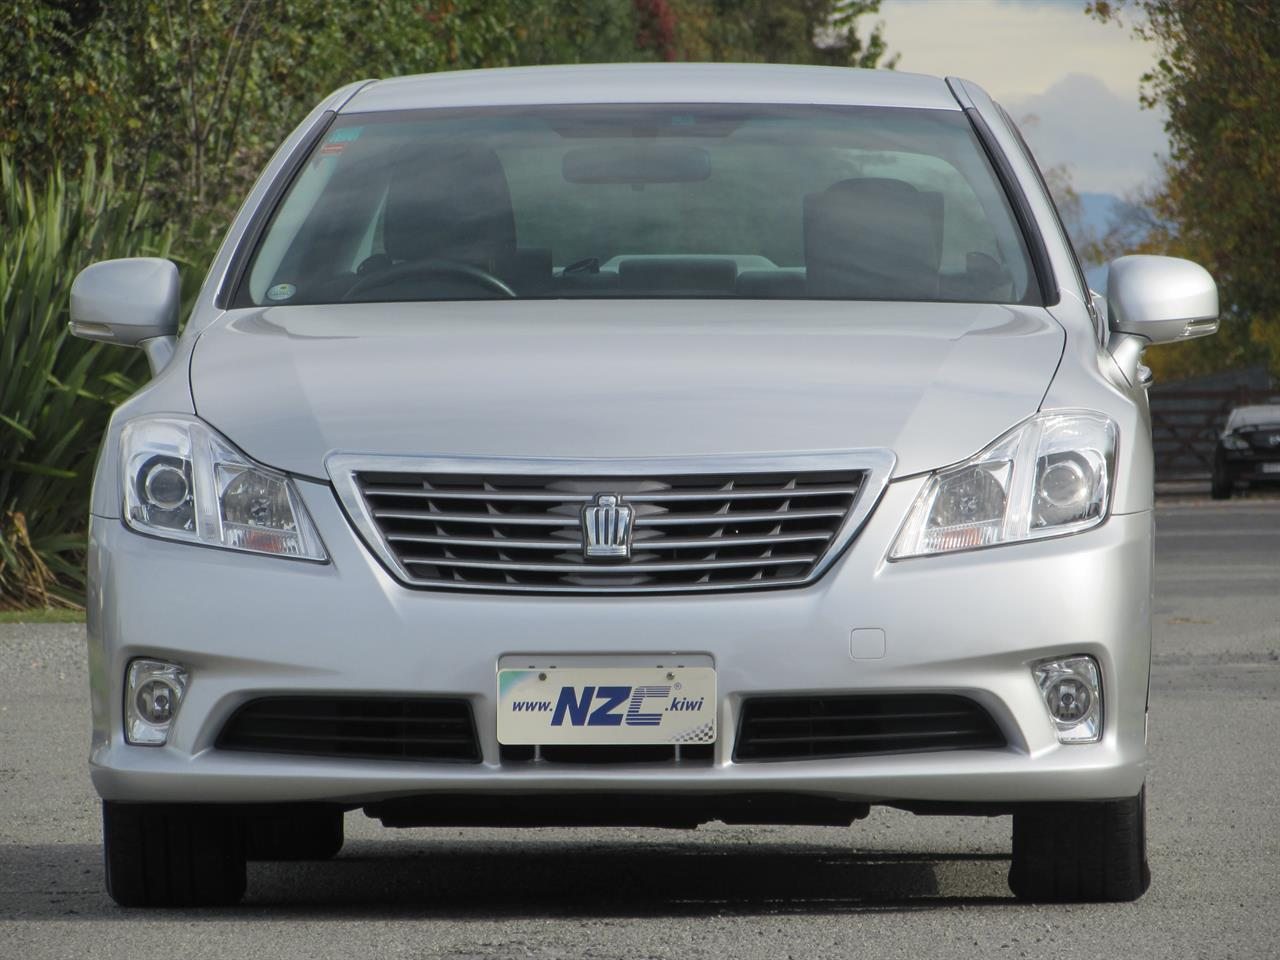 image-4, 2011 Toyota Crown at Christchurch